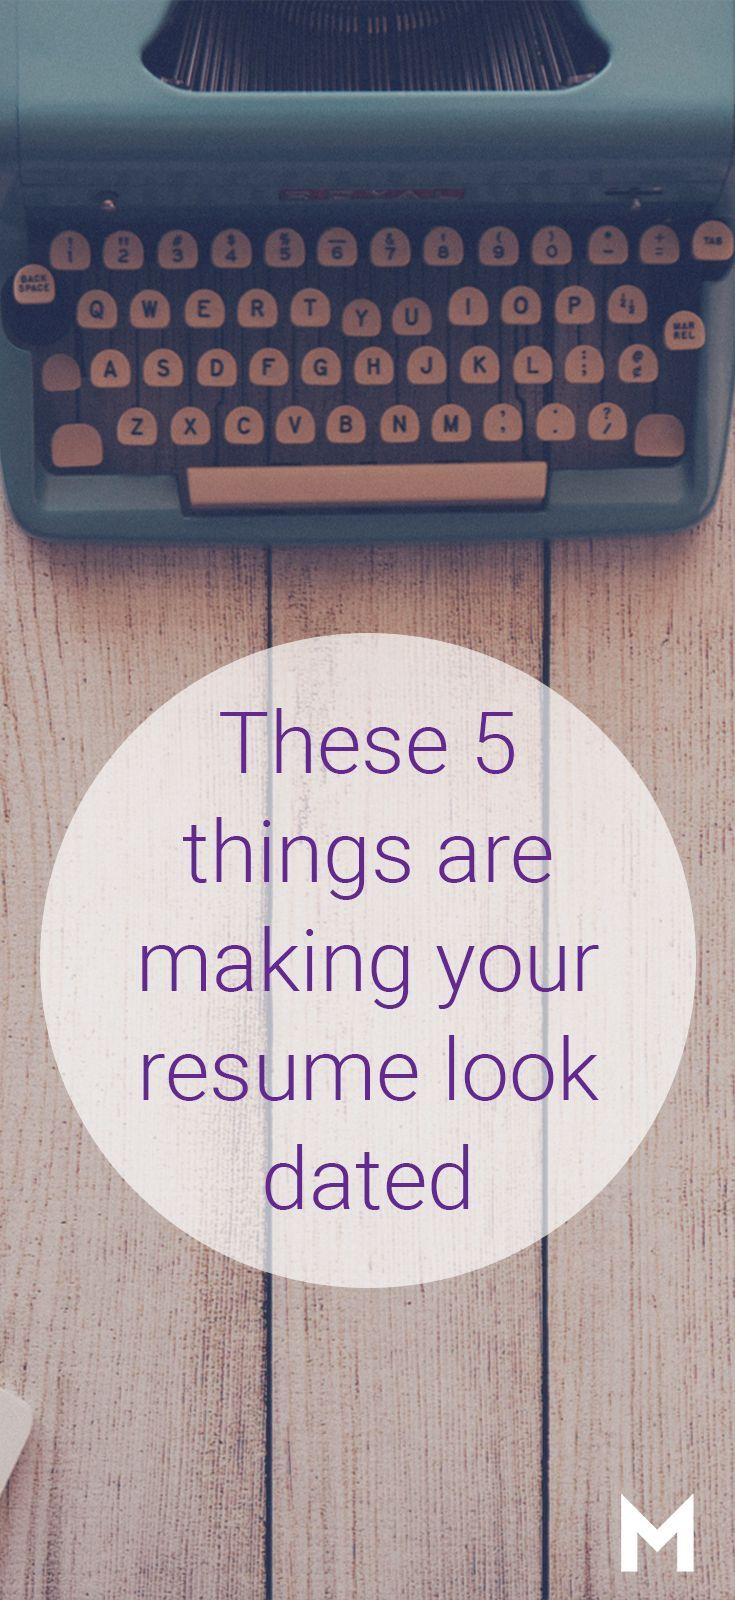 These 5 things are making your resume